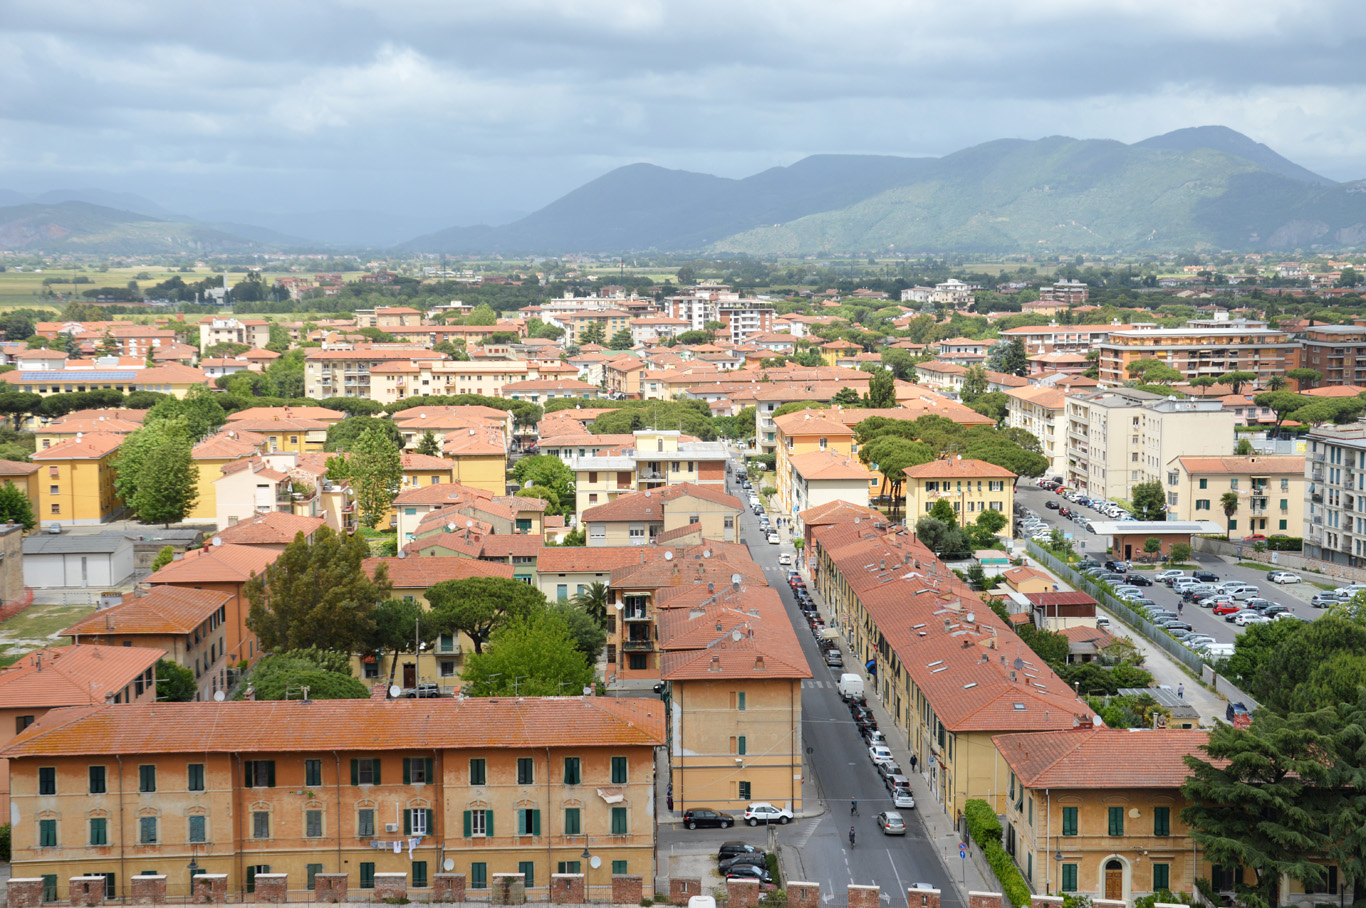 The view of Pisa from the Leaning Tower